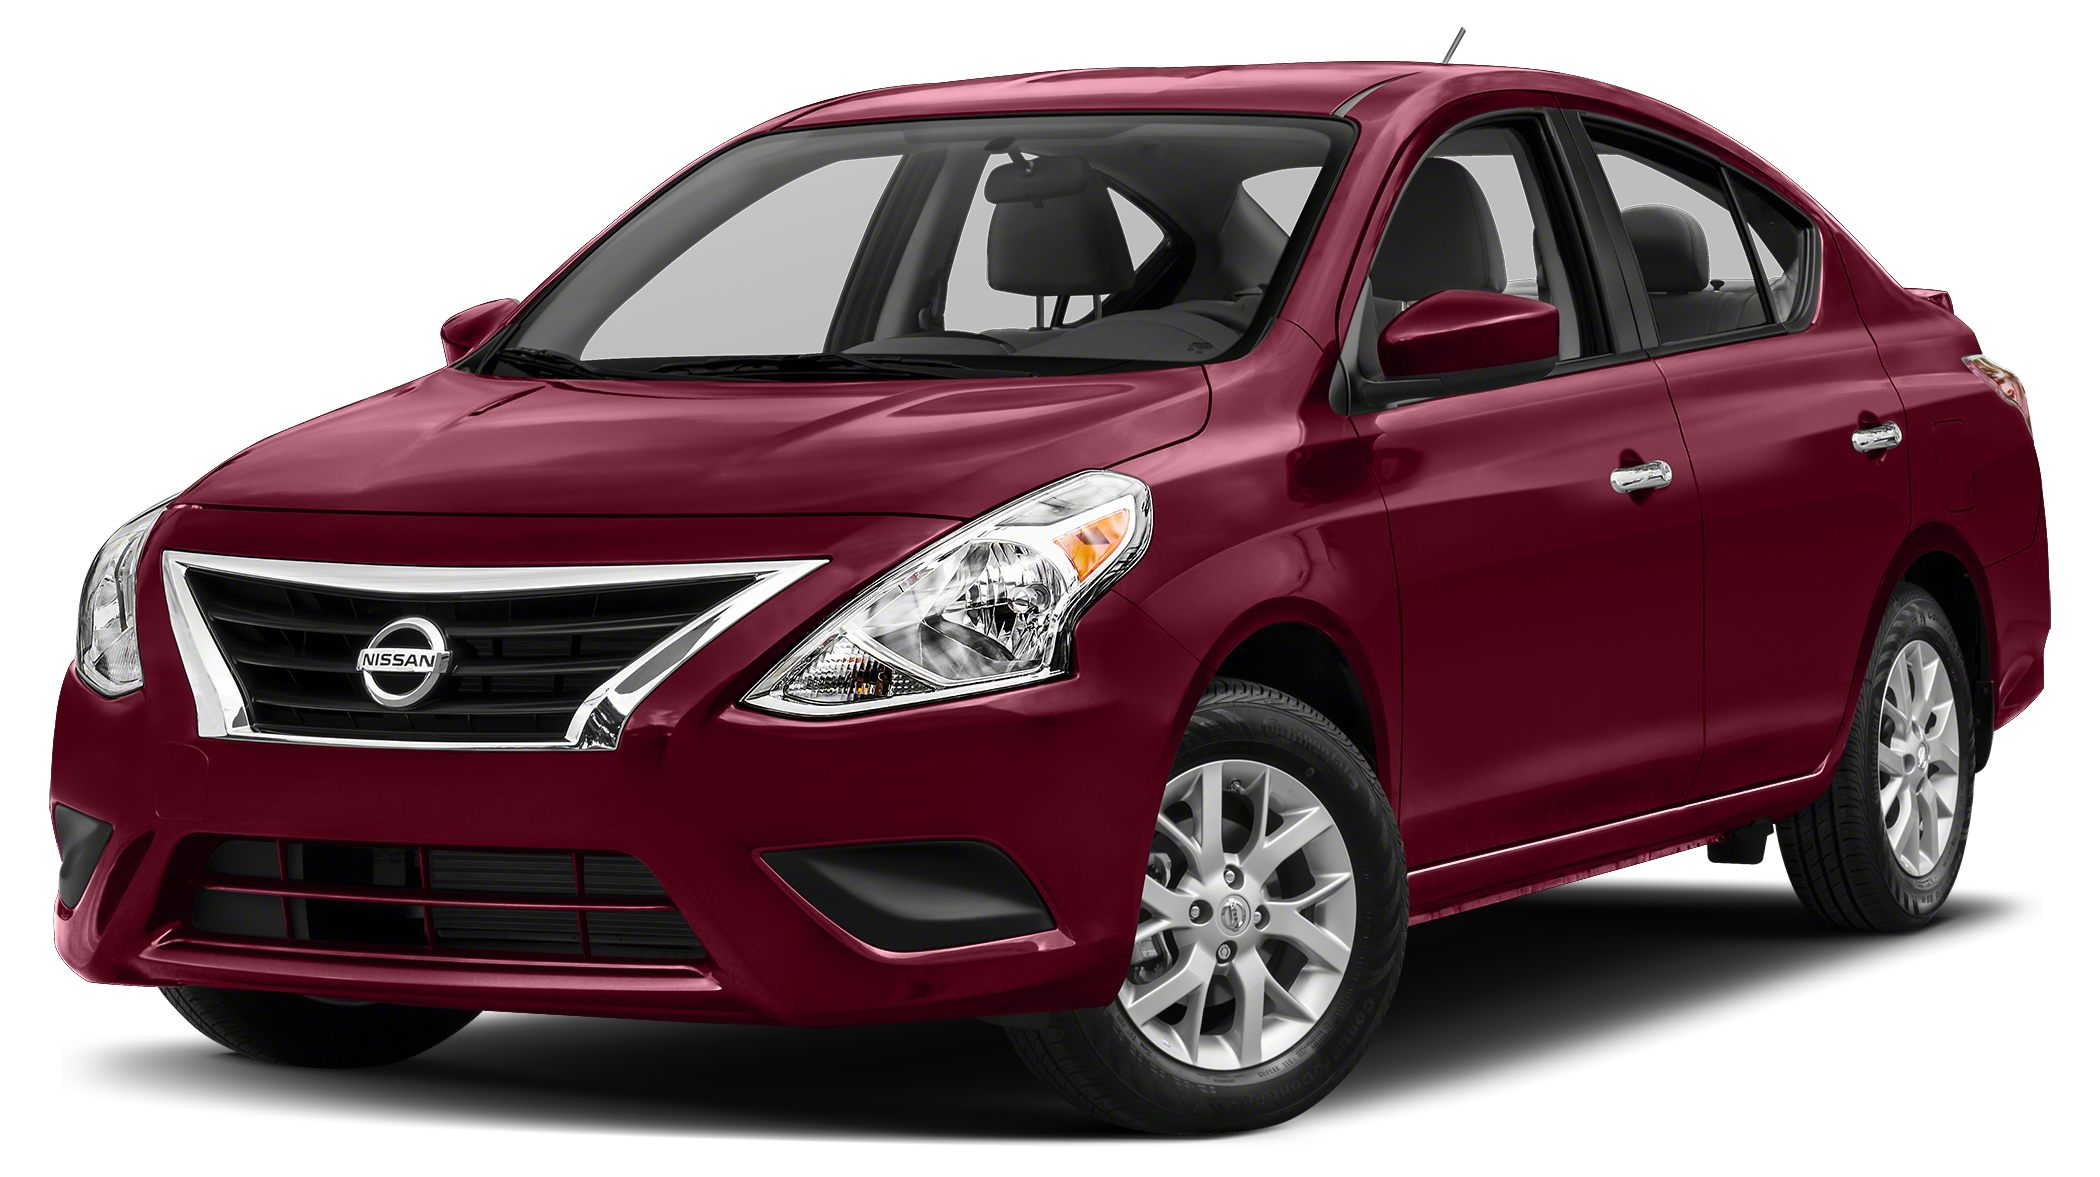 2015 Nissan Versa 16 S Miles 12531Color Red Stock 16S81A VIN 3N1CN7APXFL932515